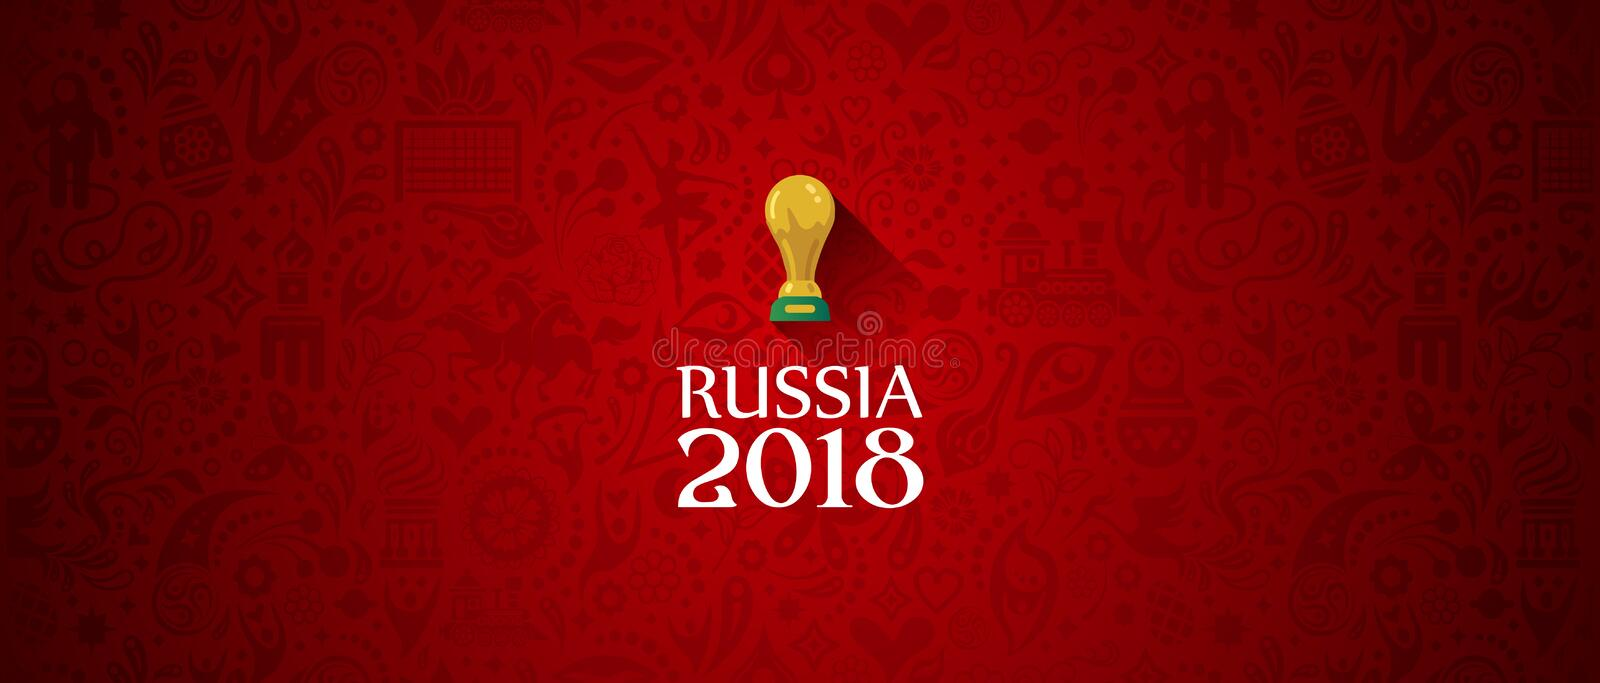 Russia 2018 World Cup banner red. Illustration of an unofficial Russia Football World Cup 2018 banner background in a red Russian themed pattern with white vector illustration